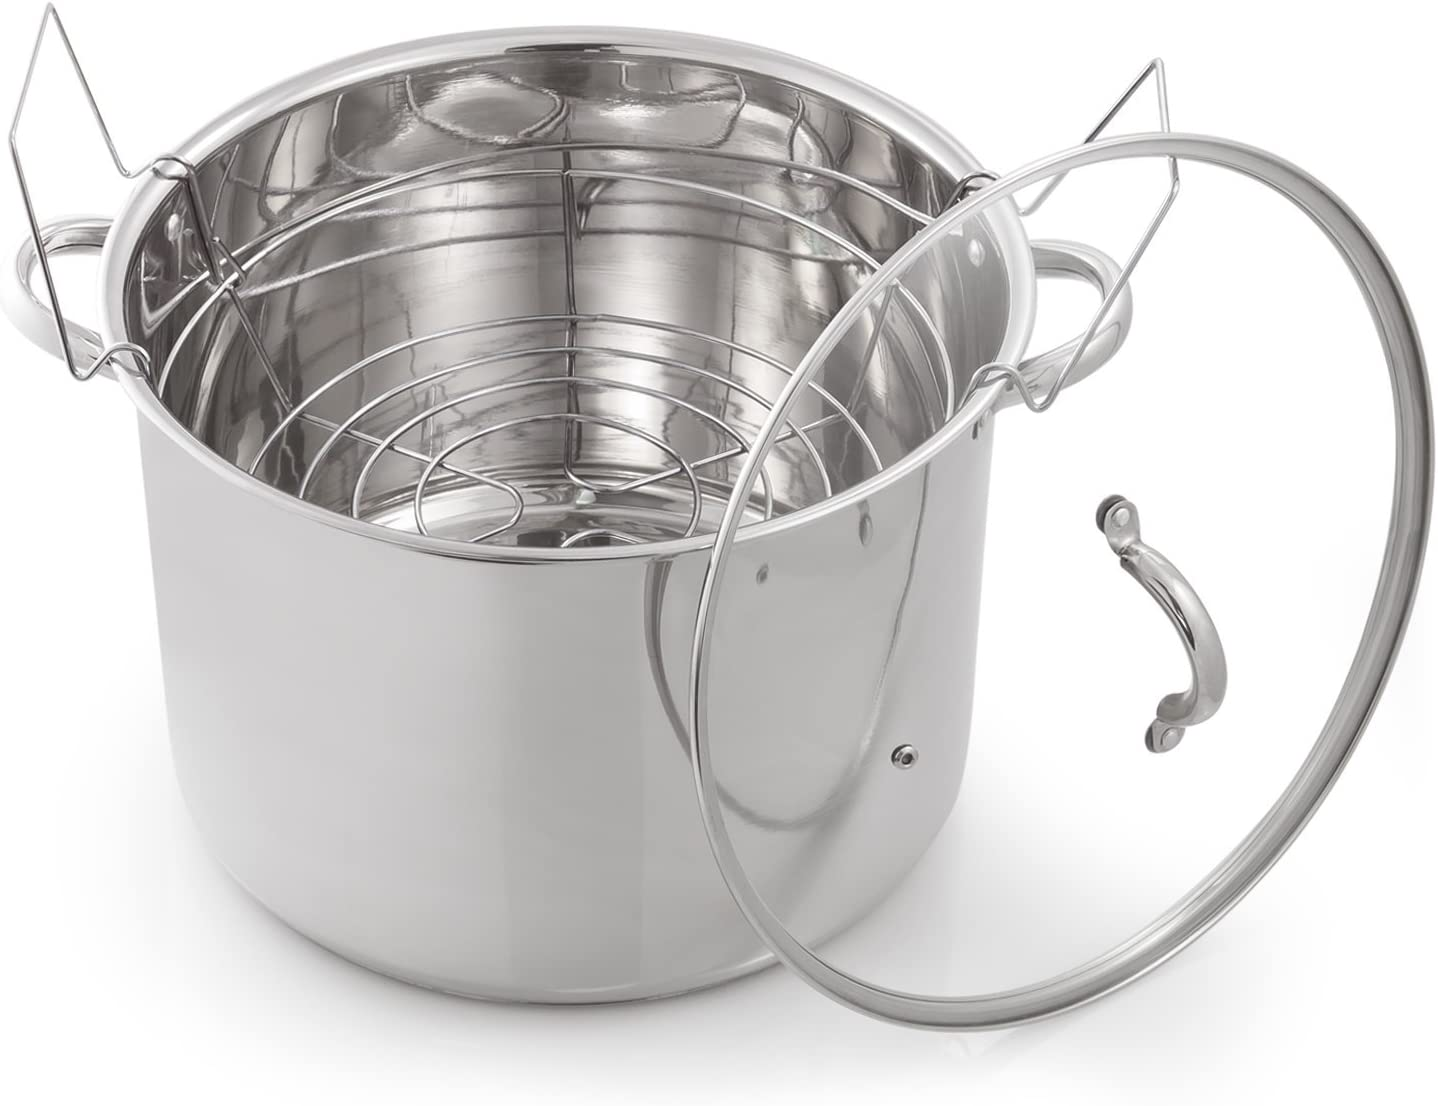 McSunley Medium Stainless Steel Prep N Cook Water Bath Canner, 21.5 quart, Silver